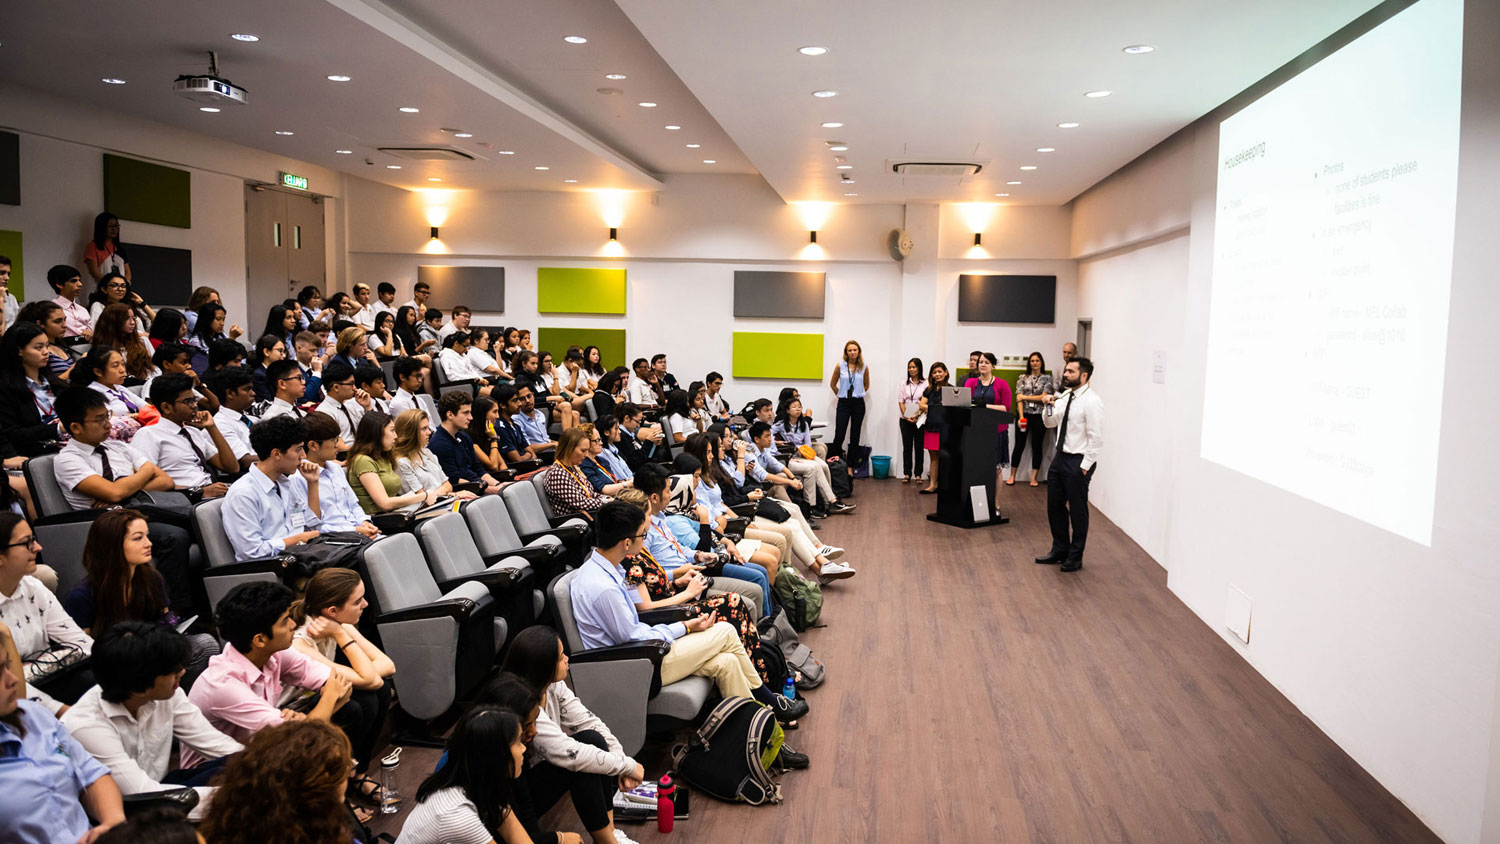 picture of an auditorium of students listening to a lecture